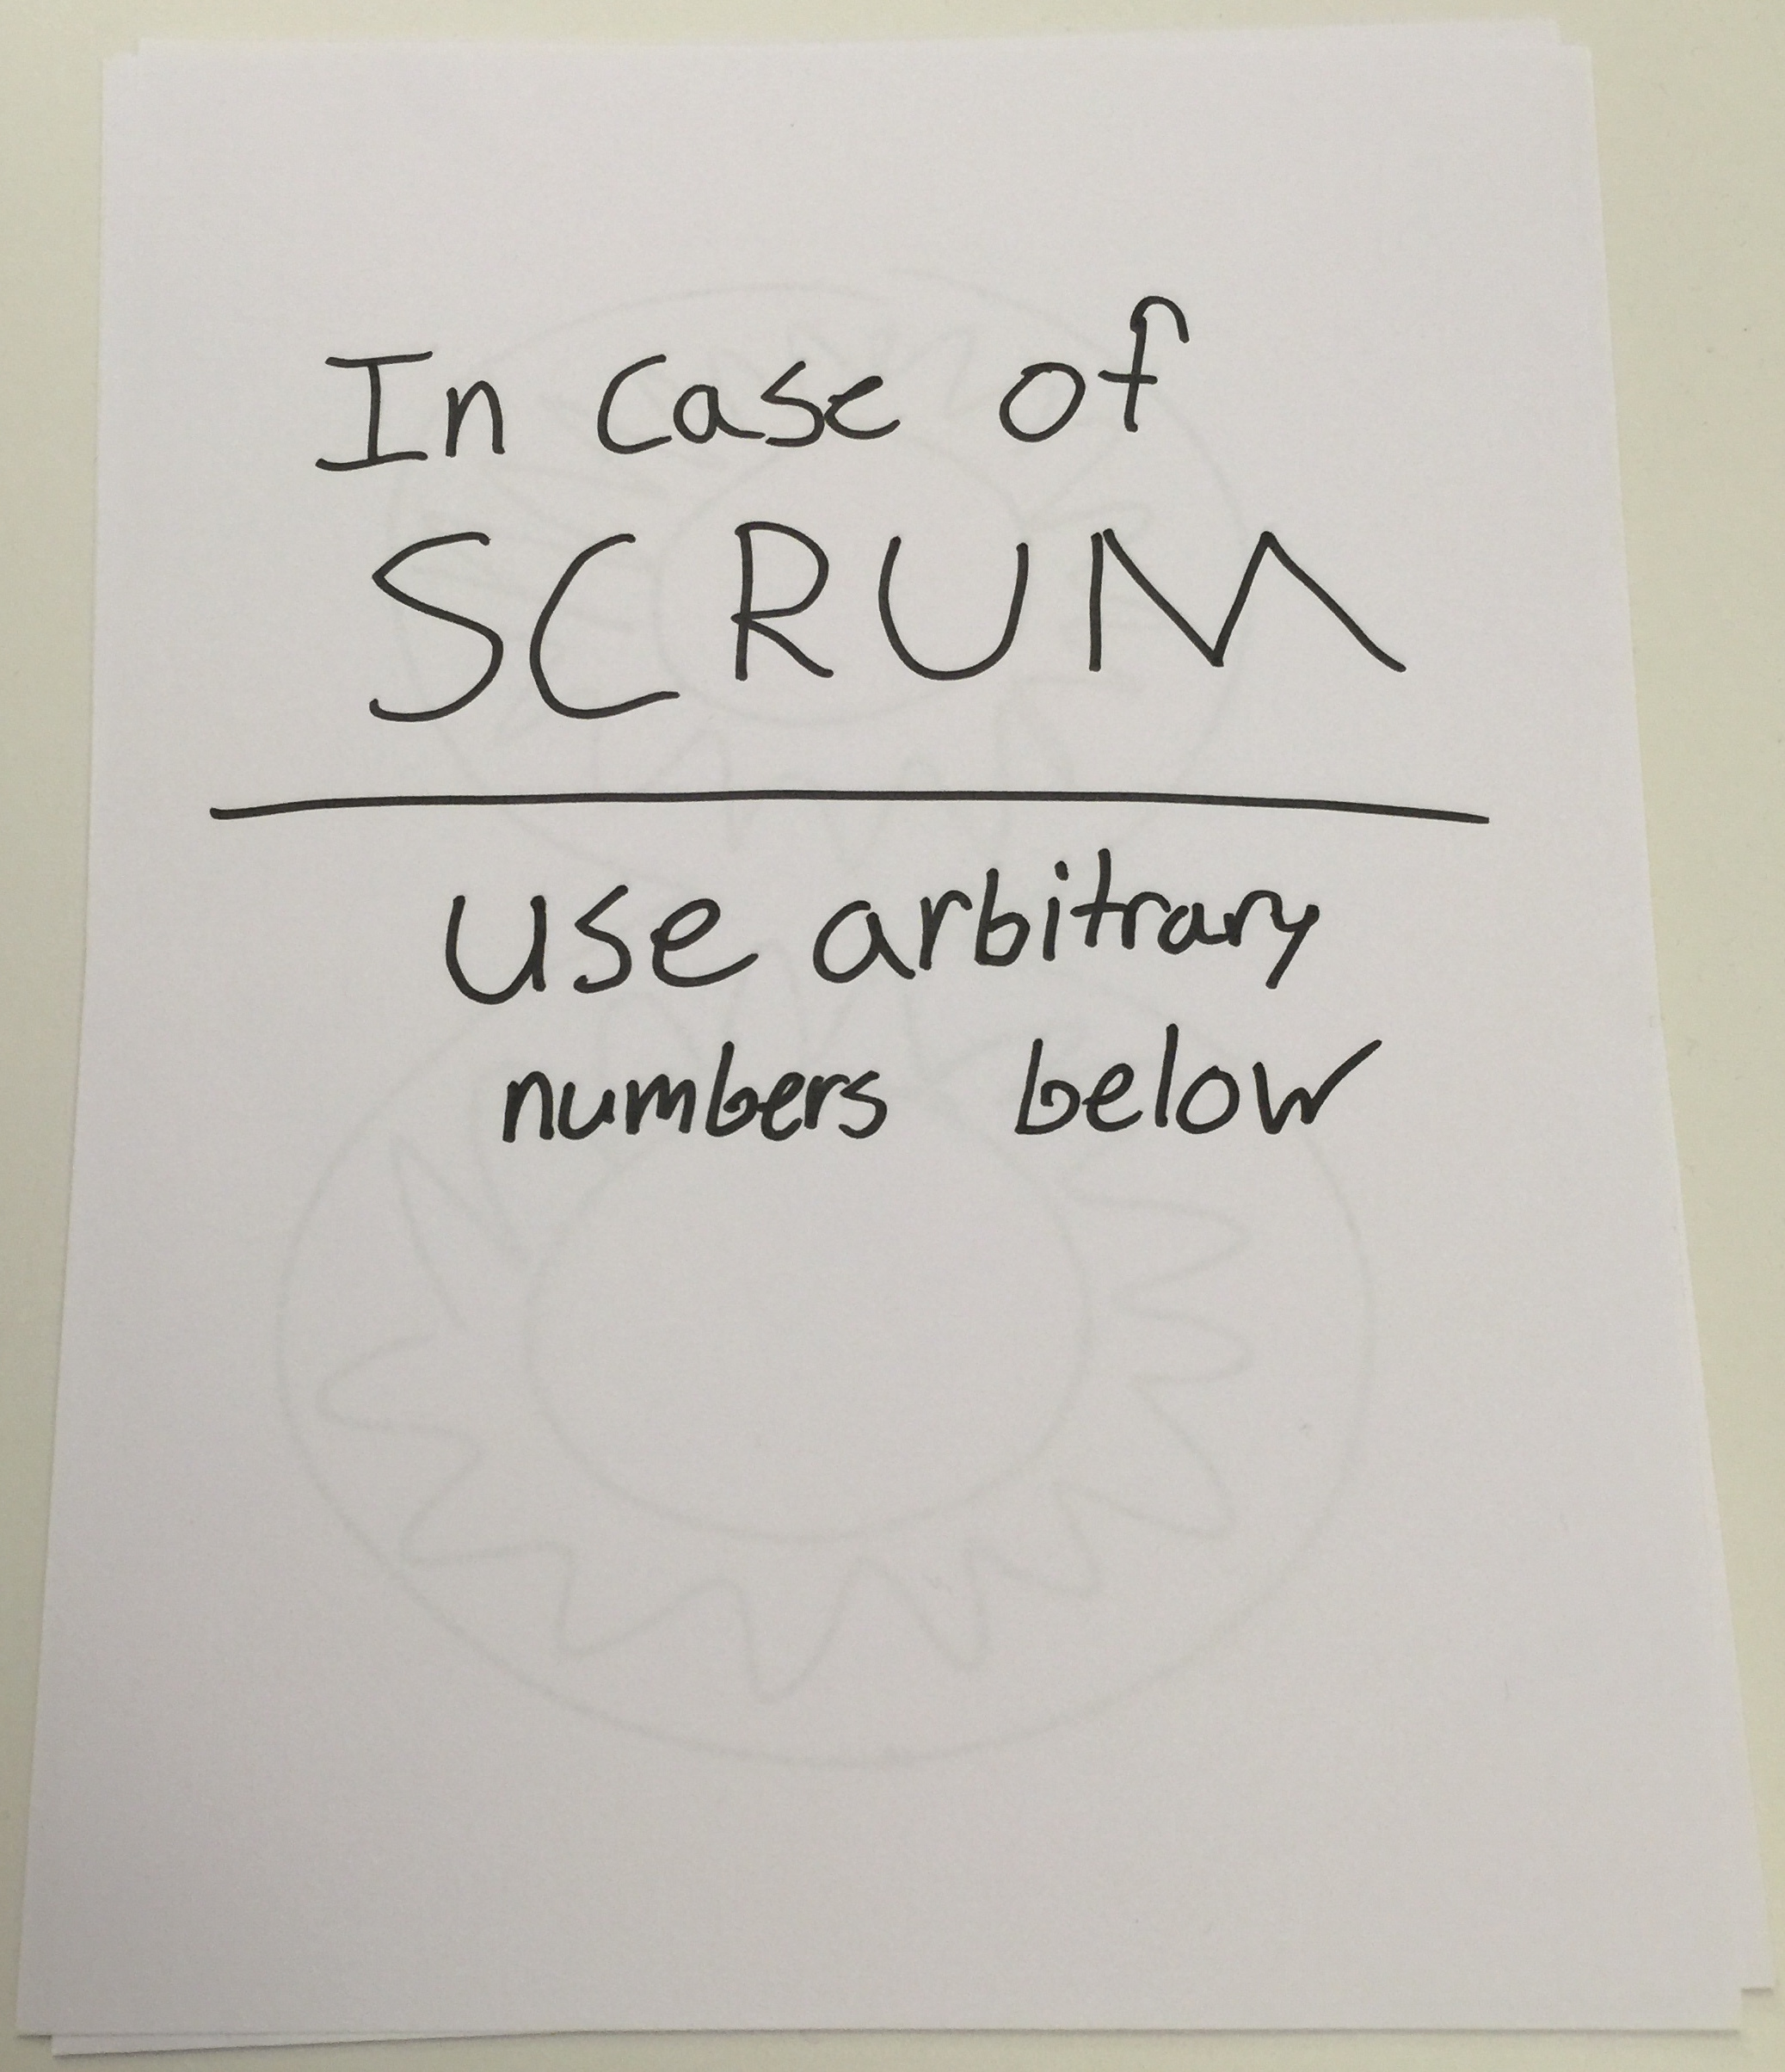 In case of scrum use arbitrary numbers below